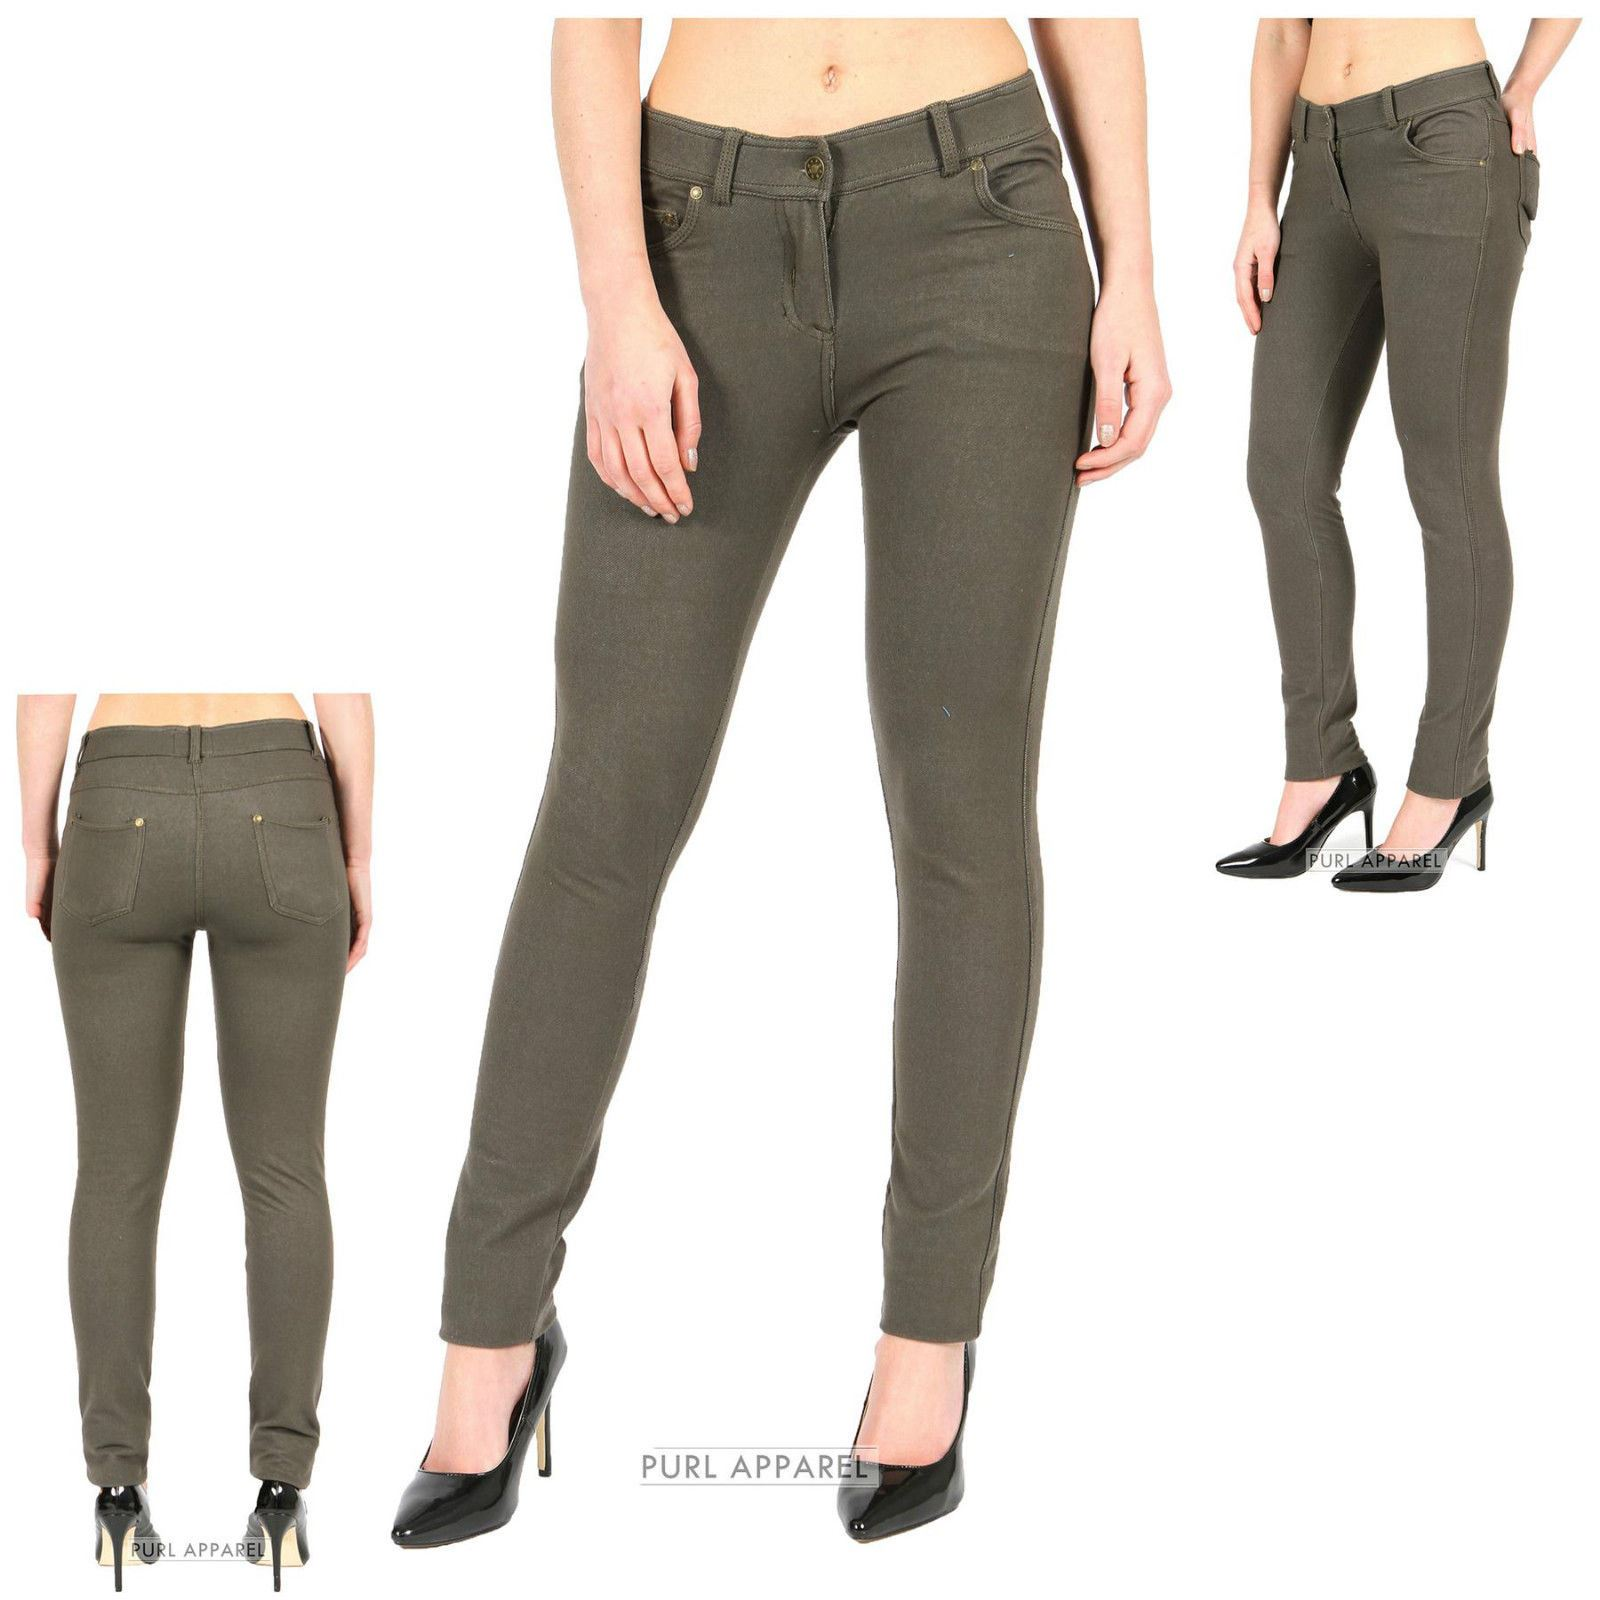 3467513a355 Skinny jeans reviews uk – Super Jeans in dieser Saison